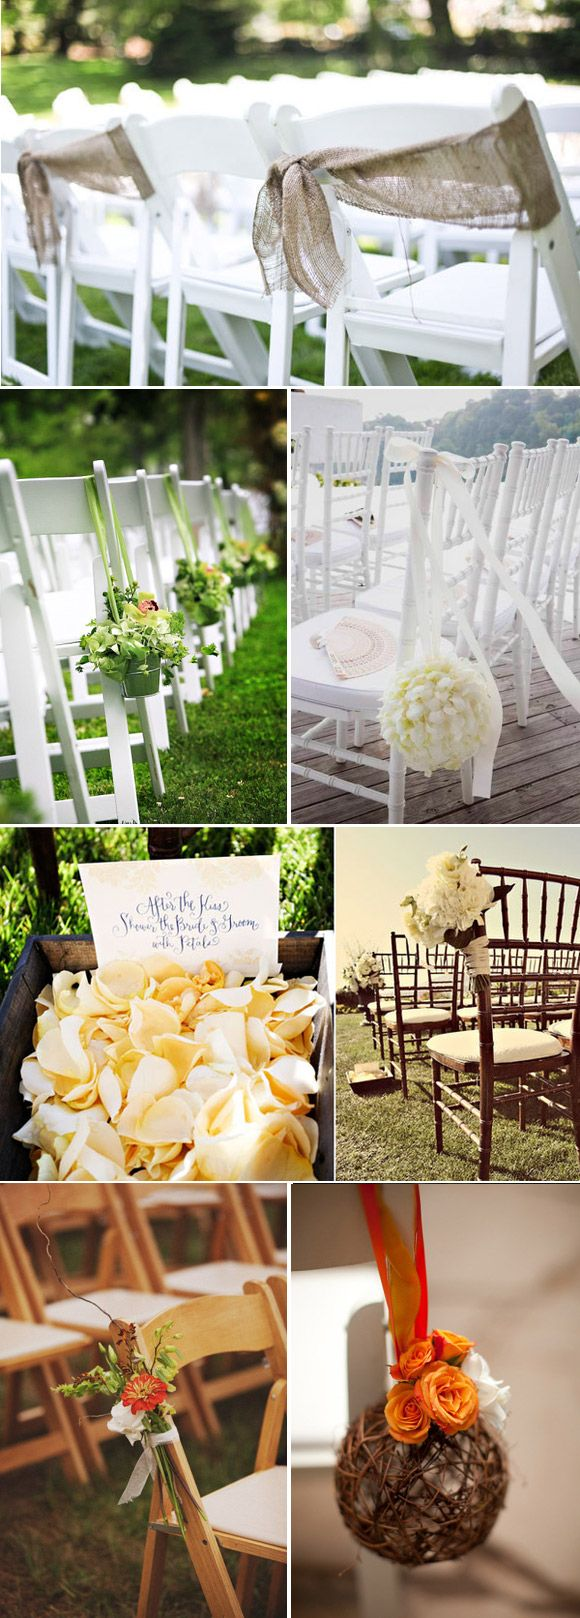 ideas originales para boda para ms informacin ingresa en